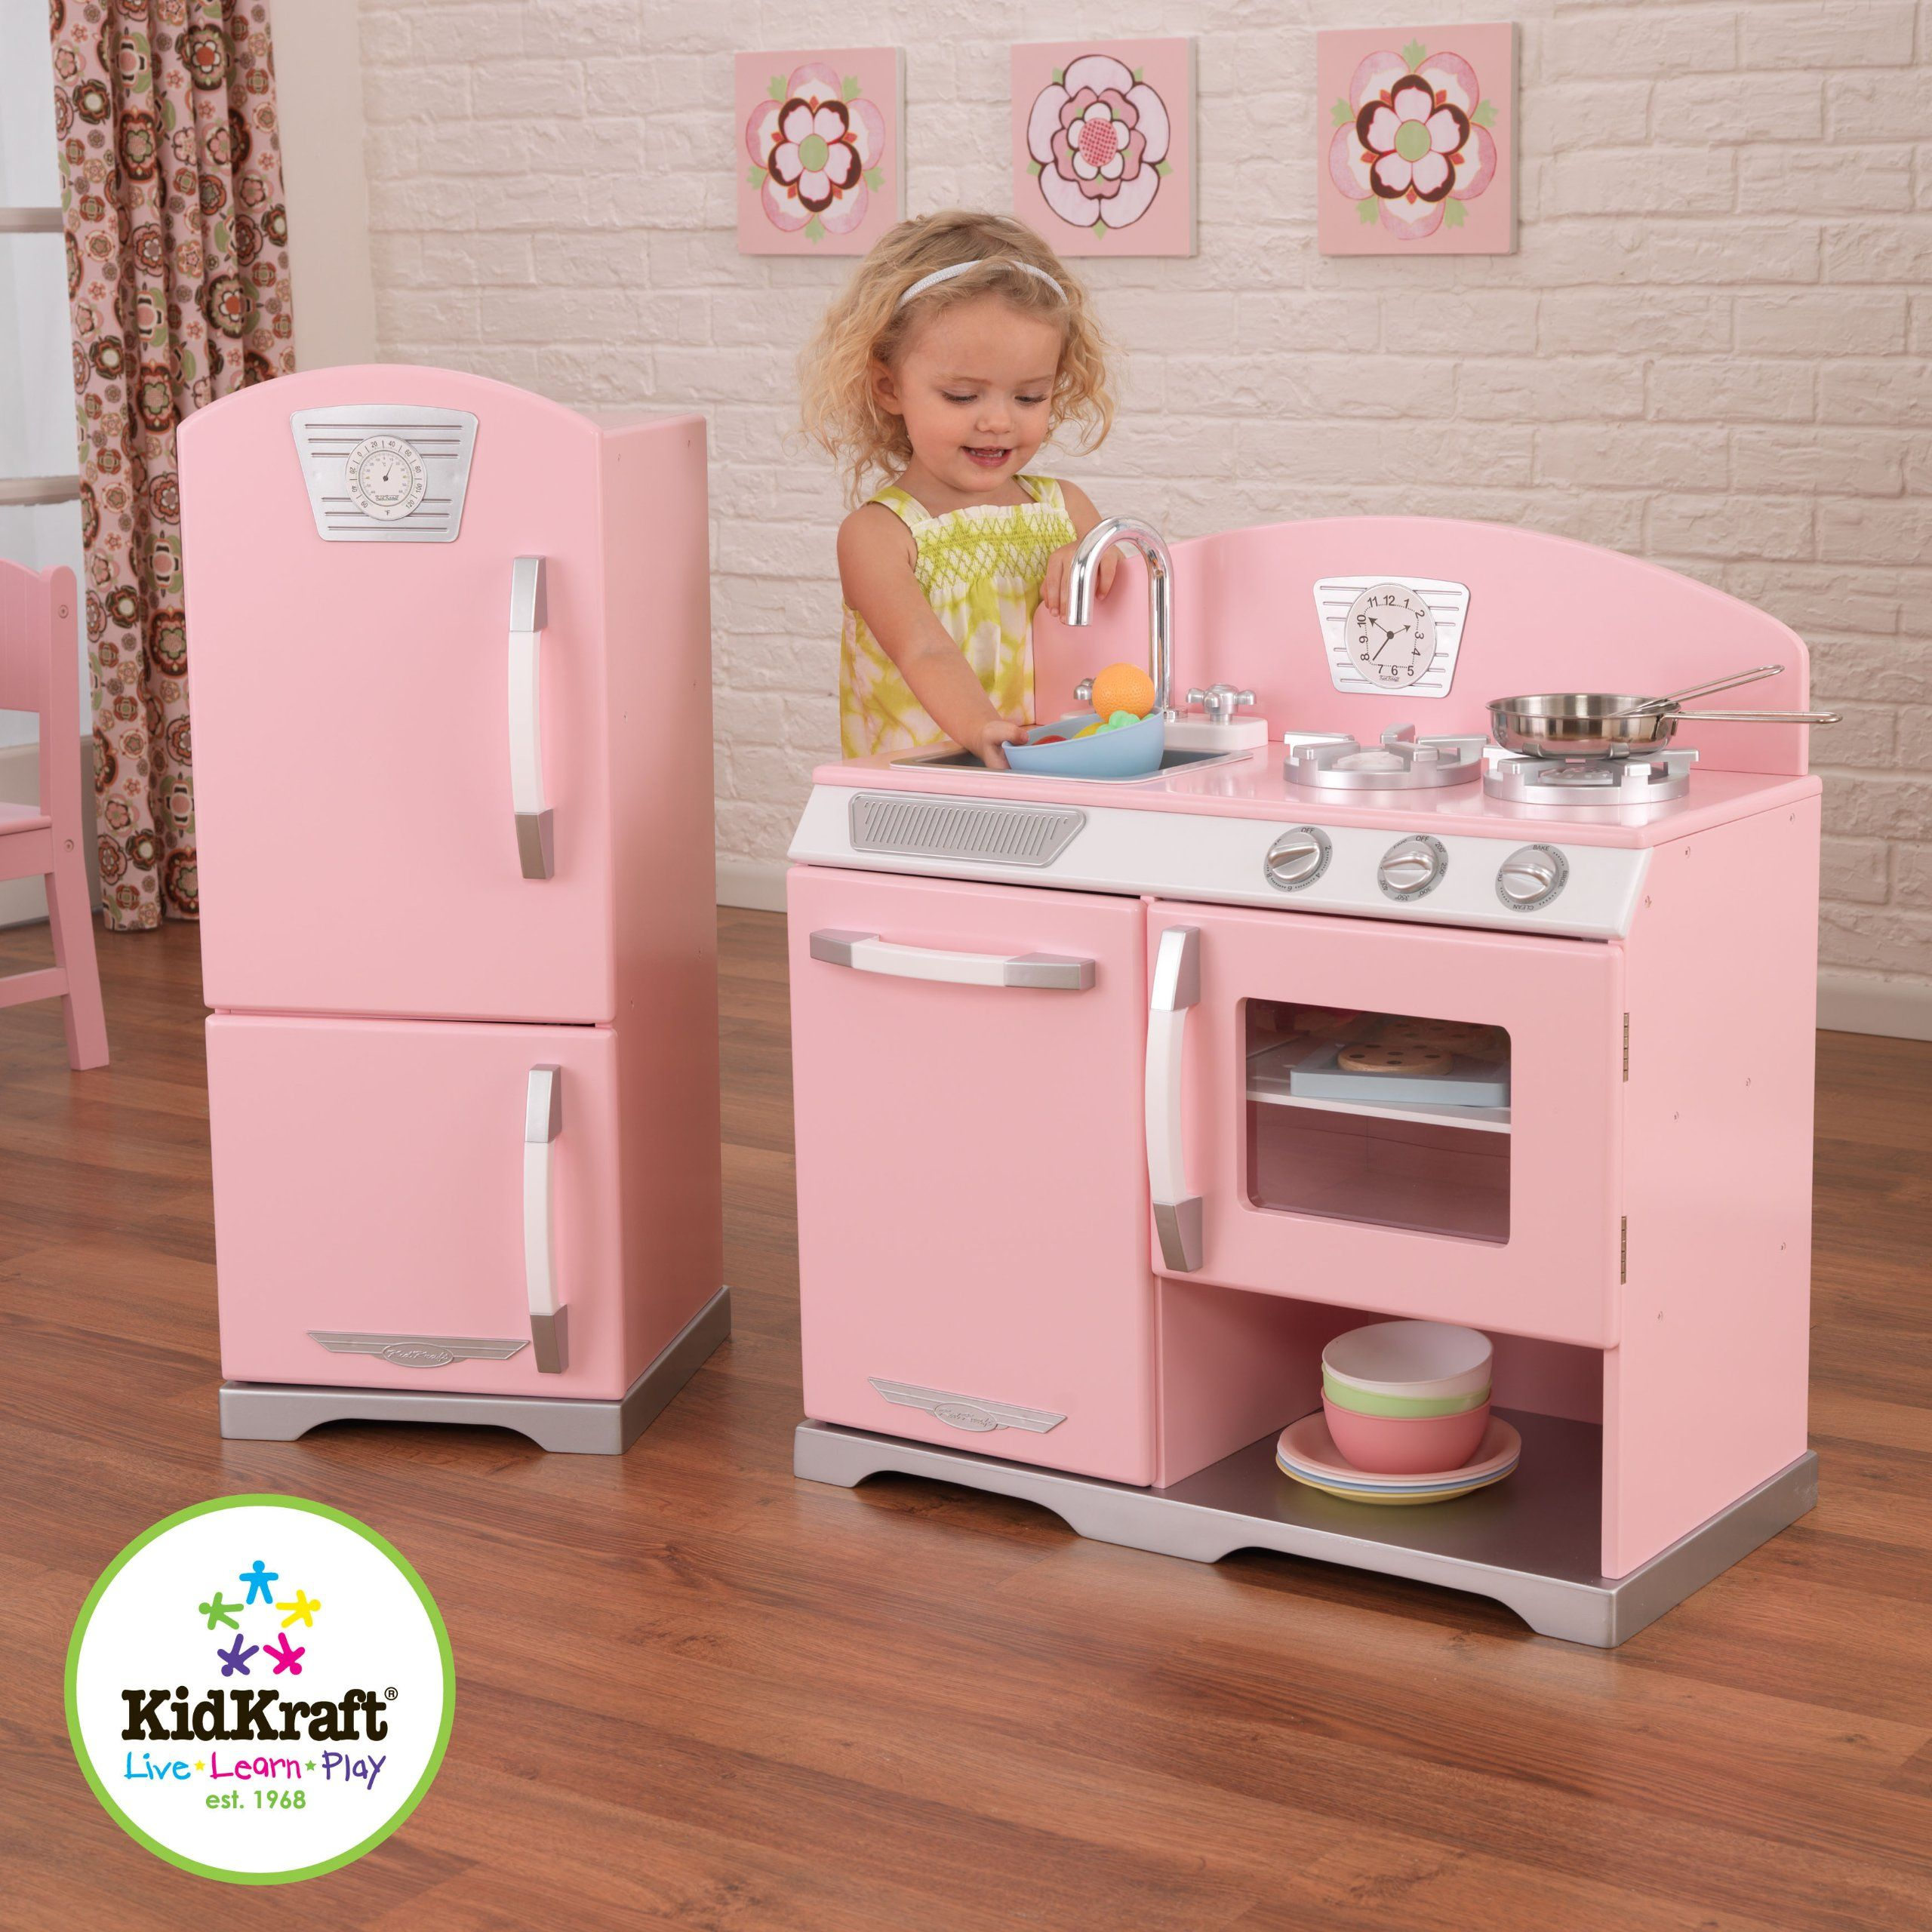 Kidkraft Retro Kitchen and Refrigerator in